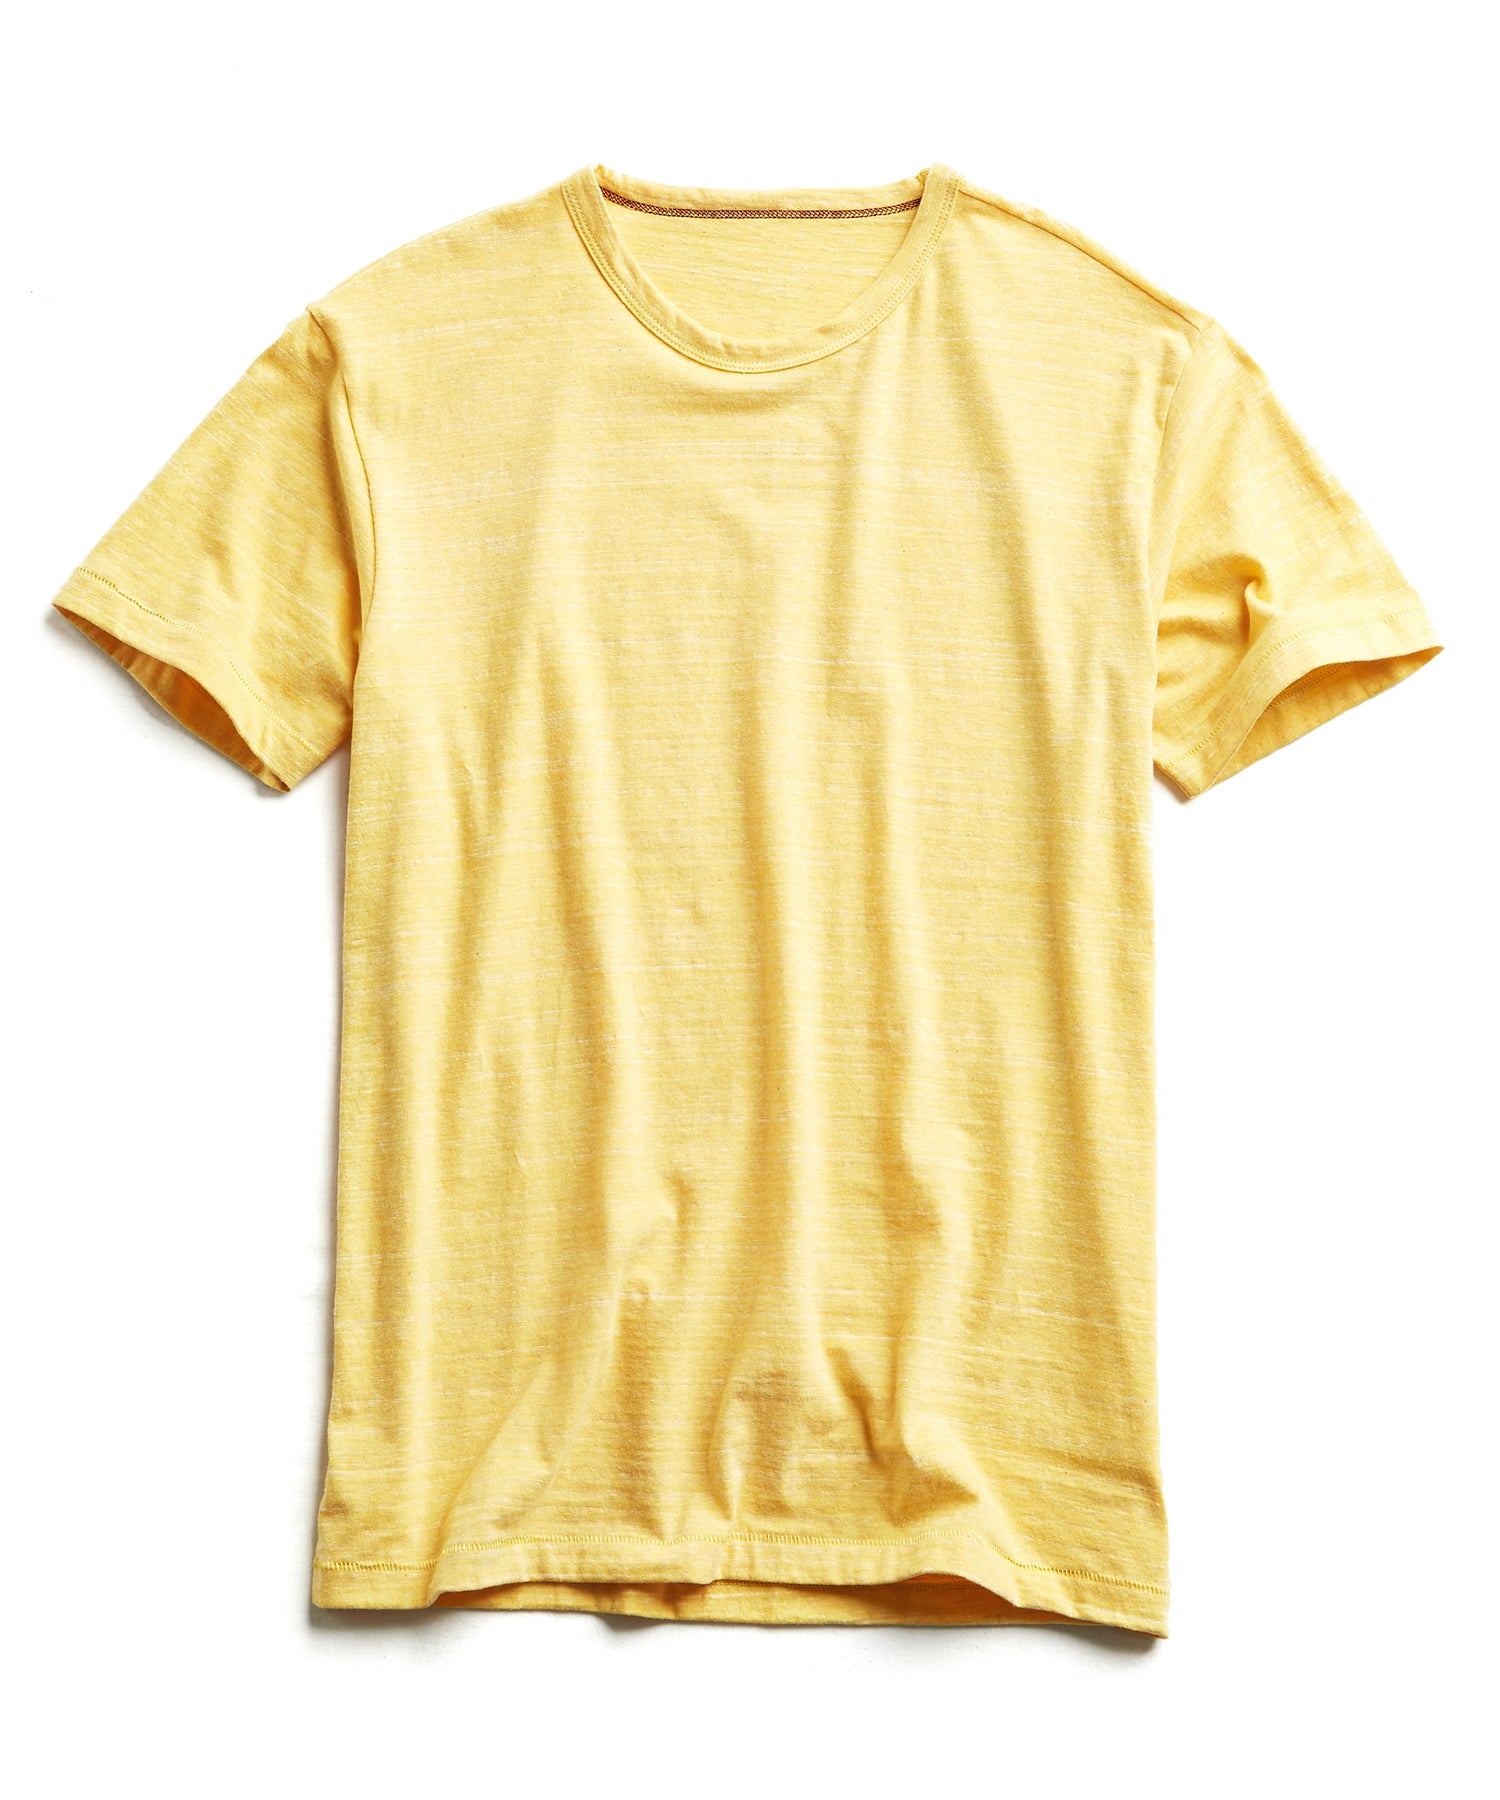 Heather T-Shirt in Marigold